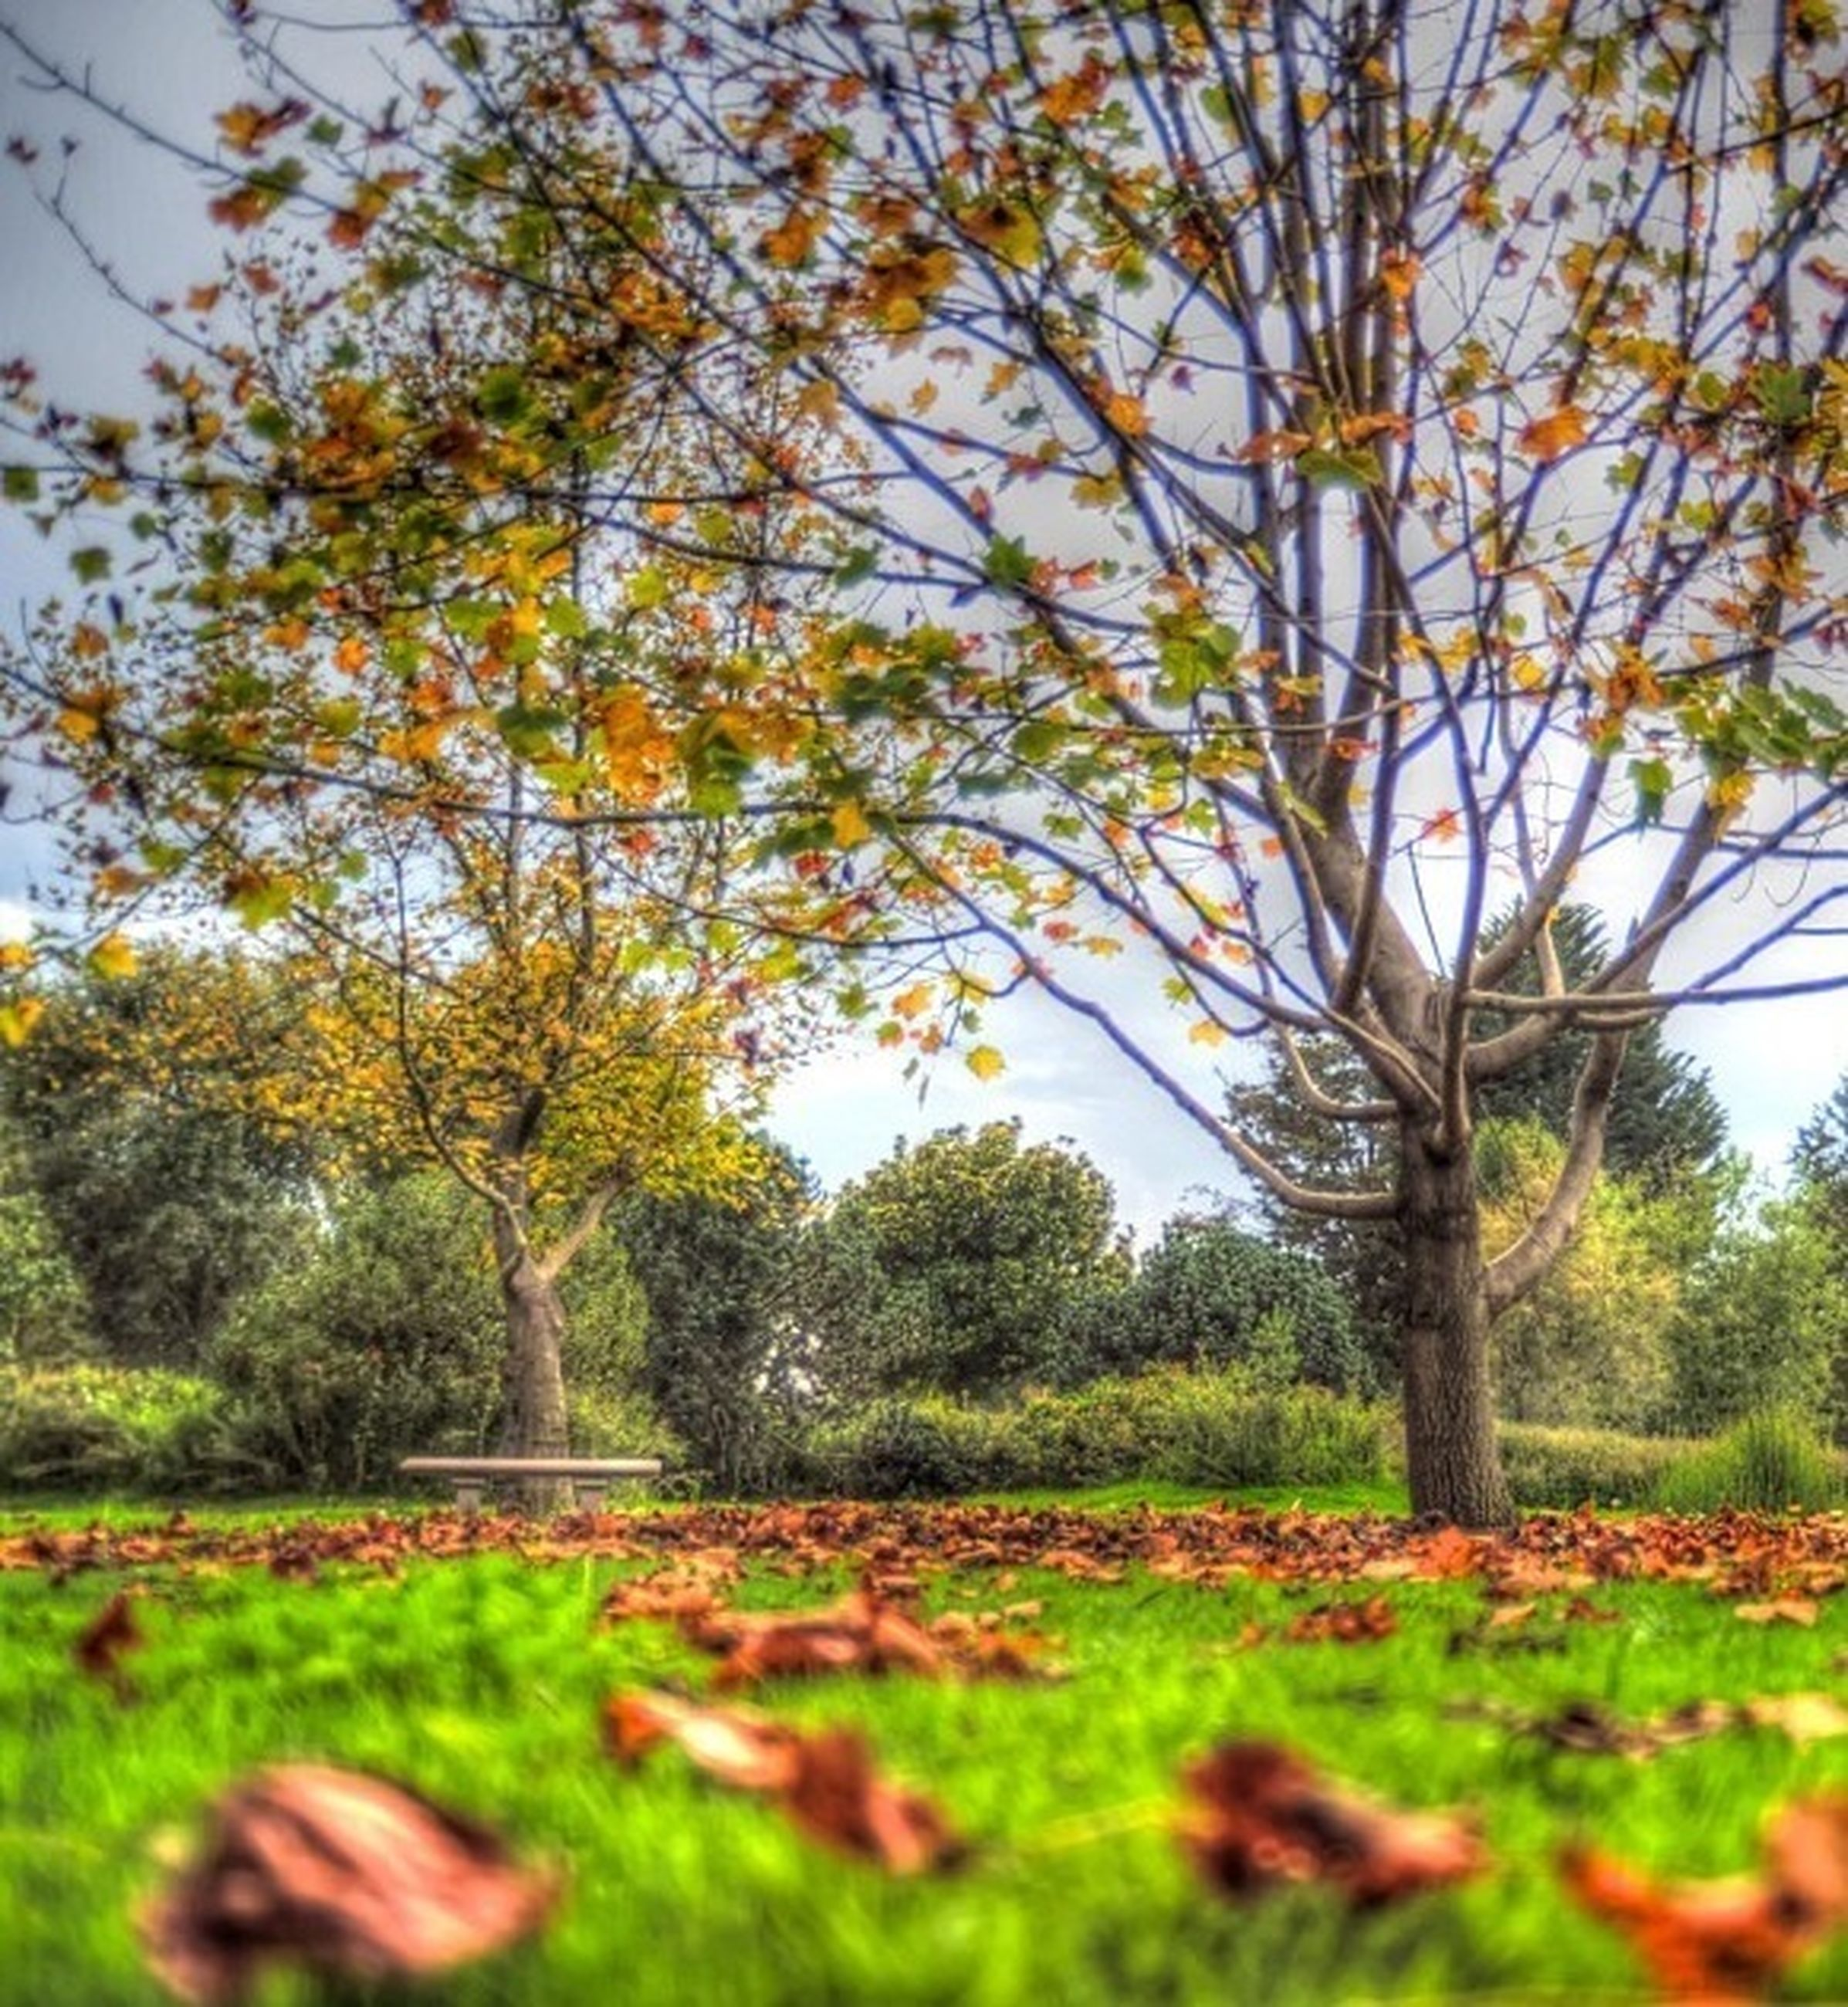 tree, autumn, growth, change, tranquility, leaf, nature, season, beauty in nature, tranquil scene, sunlight, branch, park - man made space, grass, green color, scenics, field, day, fallen, landscape